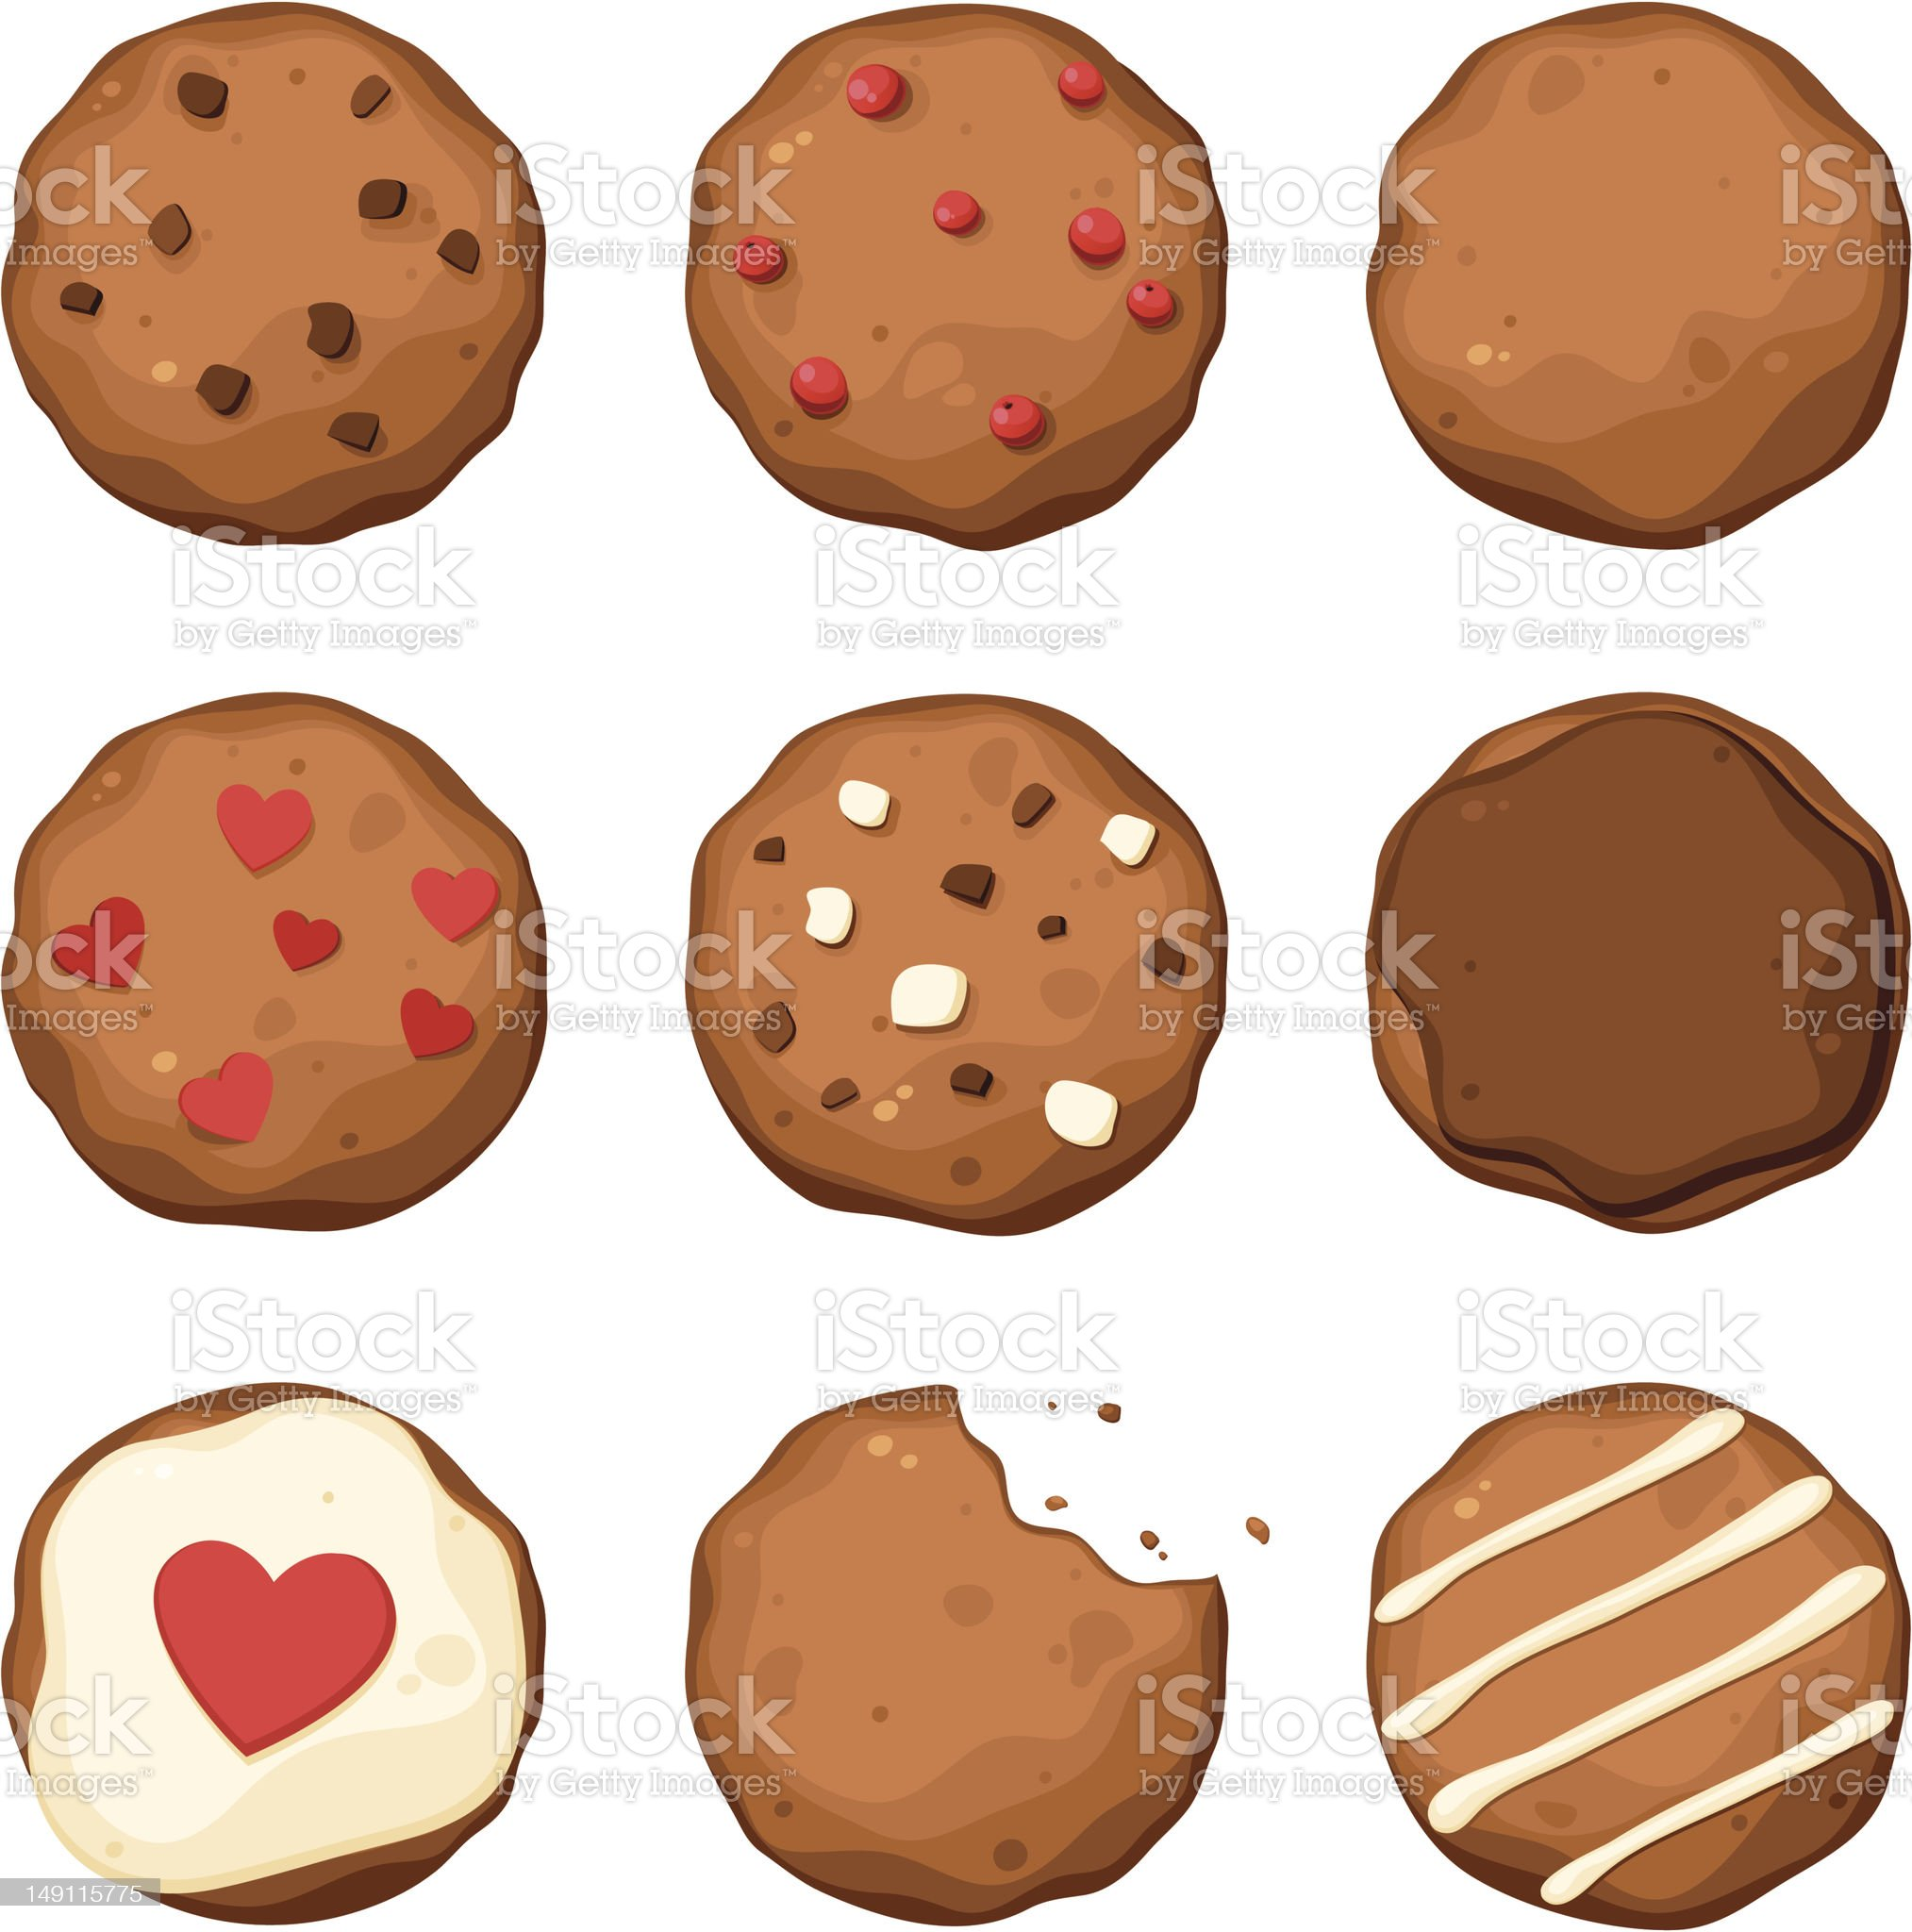 Chocolate chip cookies set royalty-free stock vector art